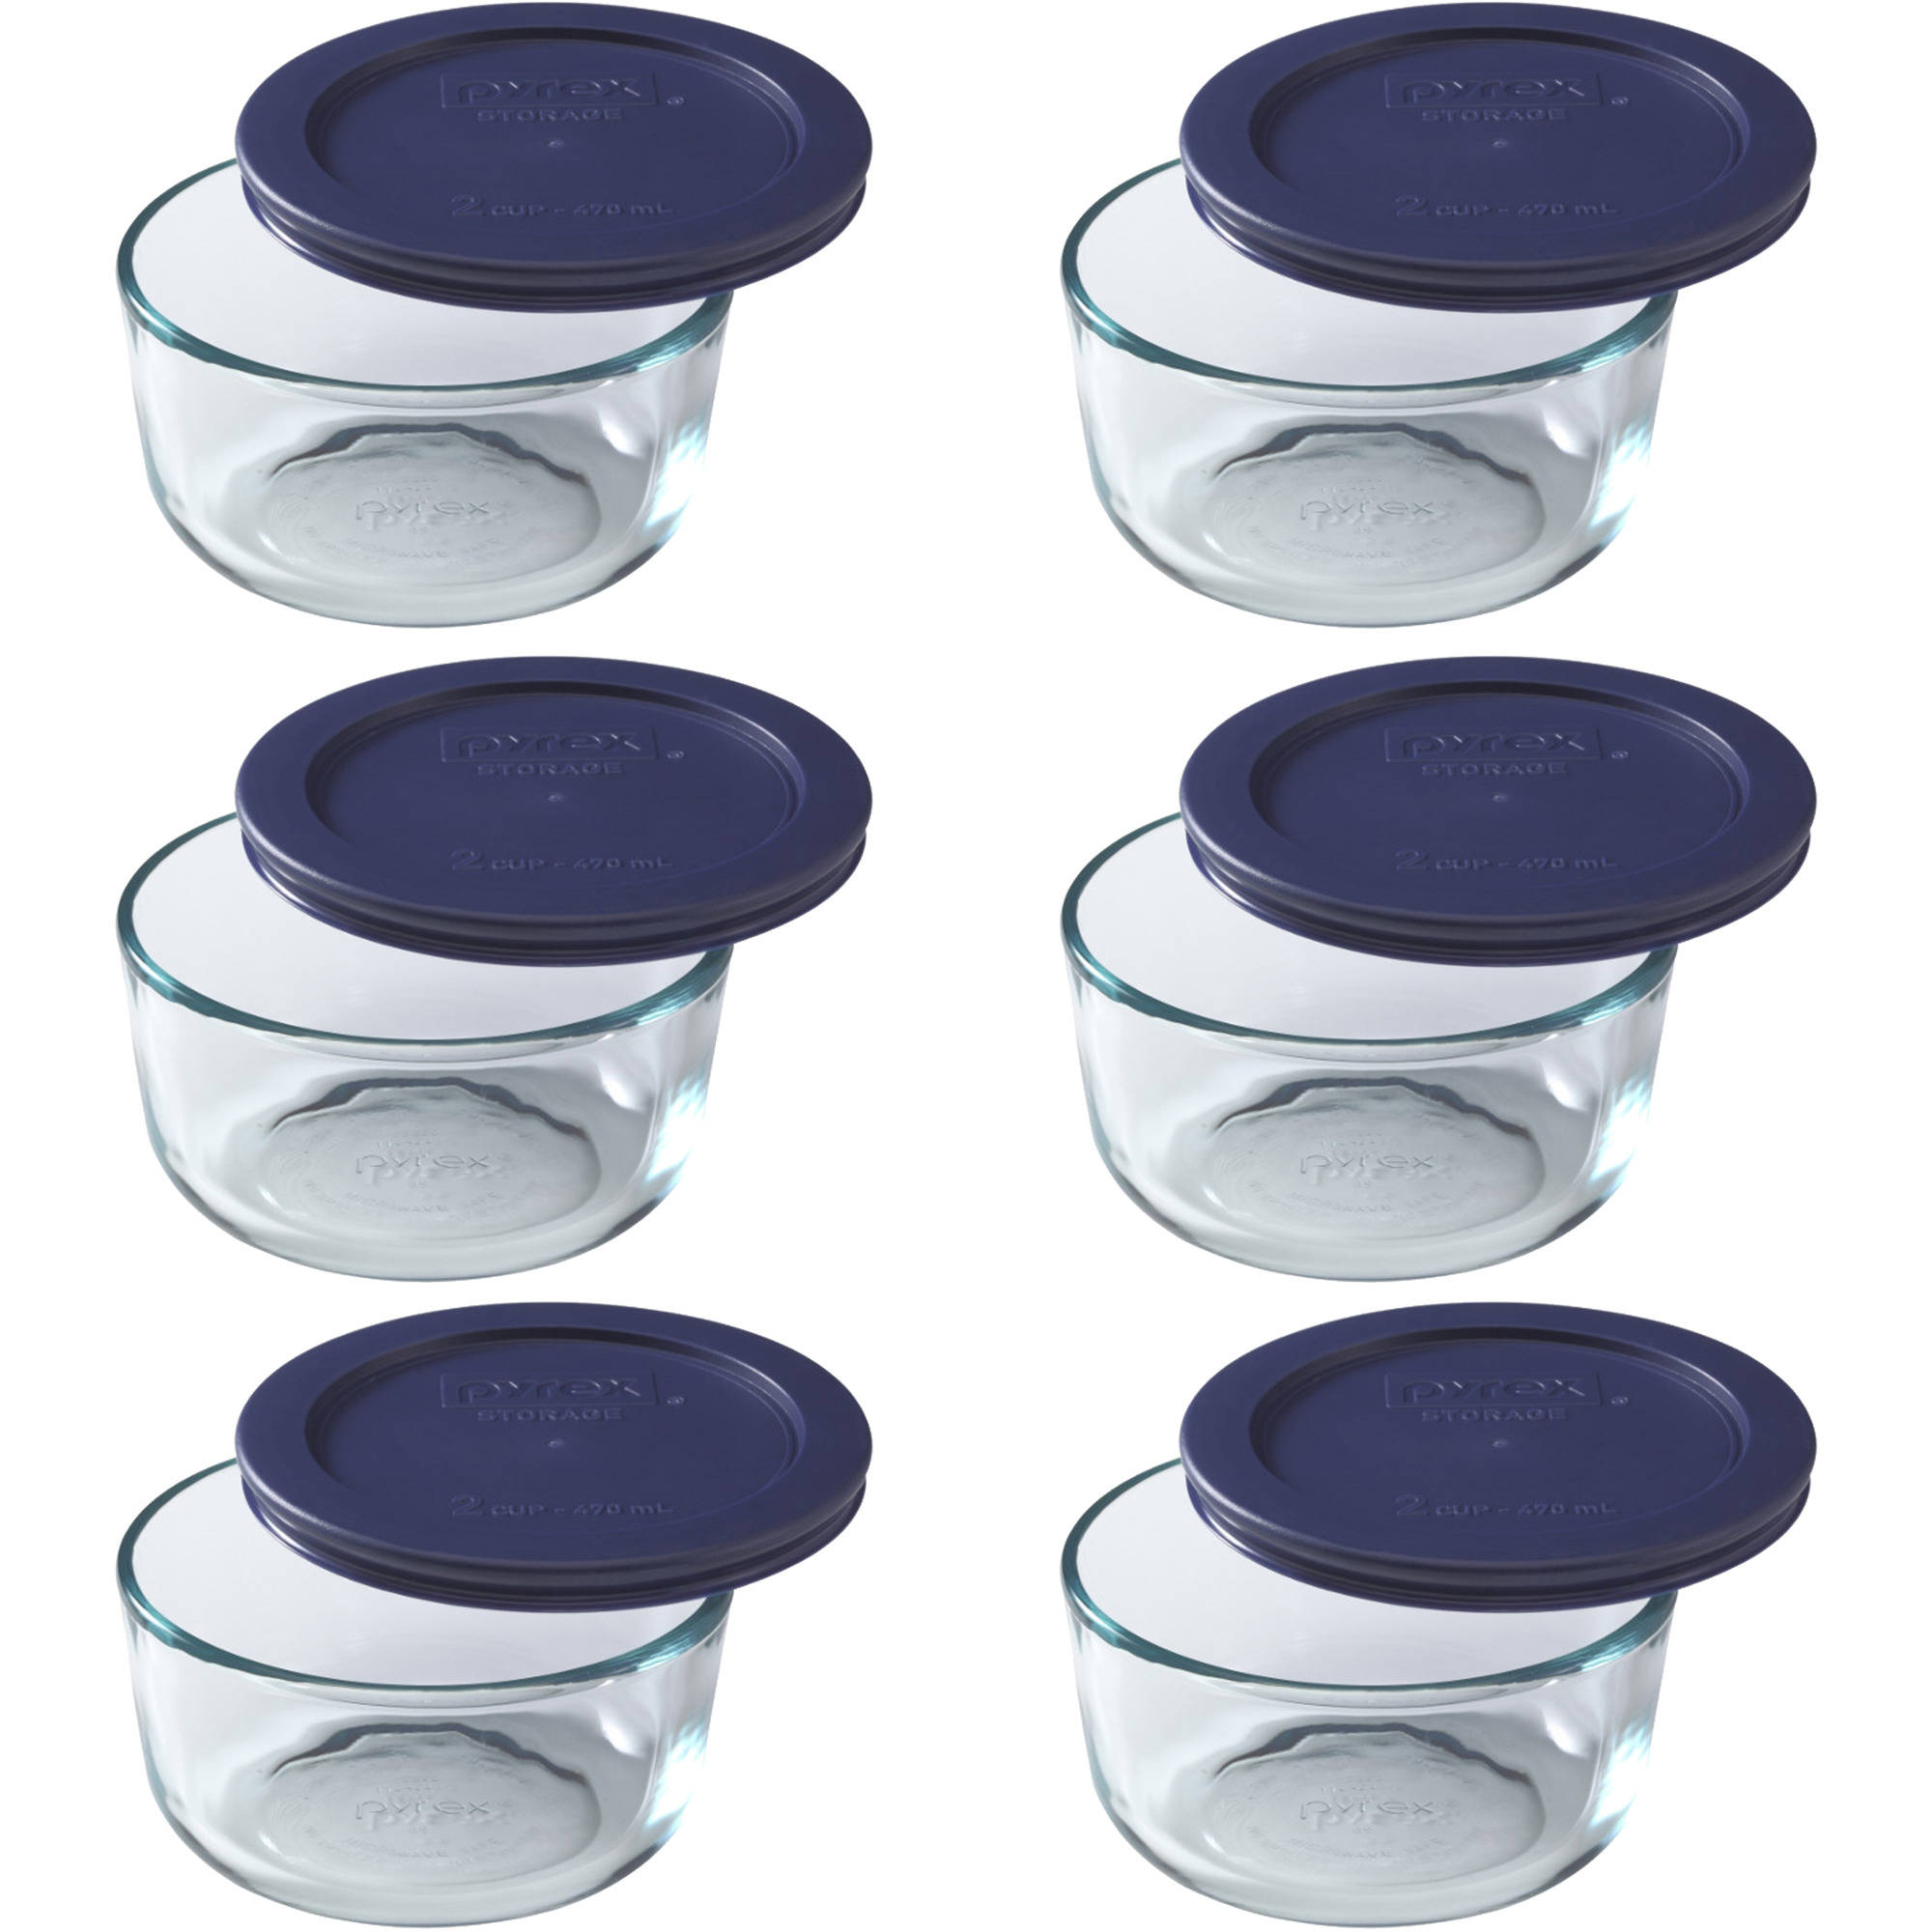 Pyrex 2-Cup Round Glass Storage Set with Dark Blue Plastic Cover, Set of 6